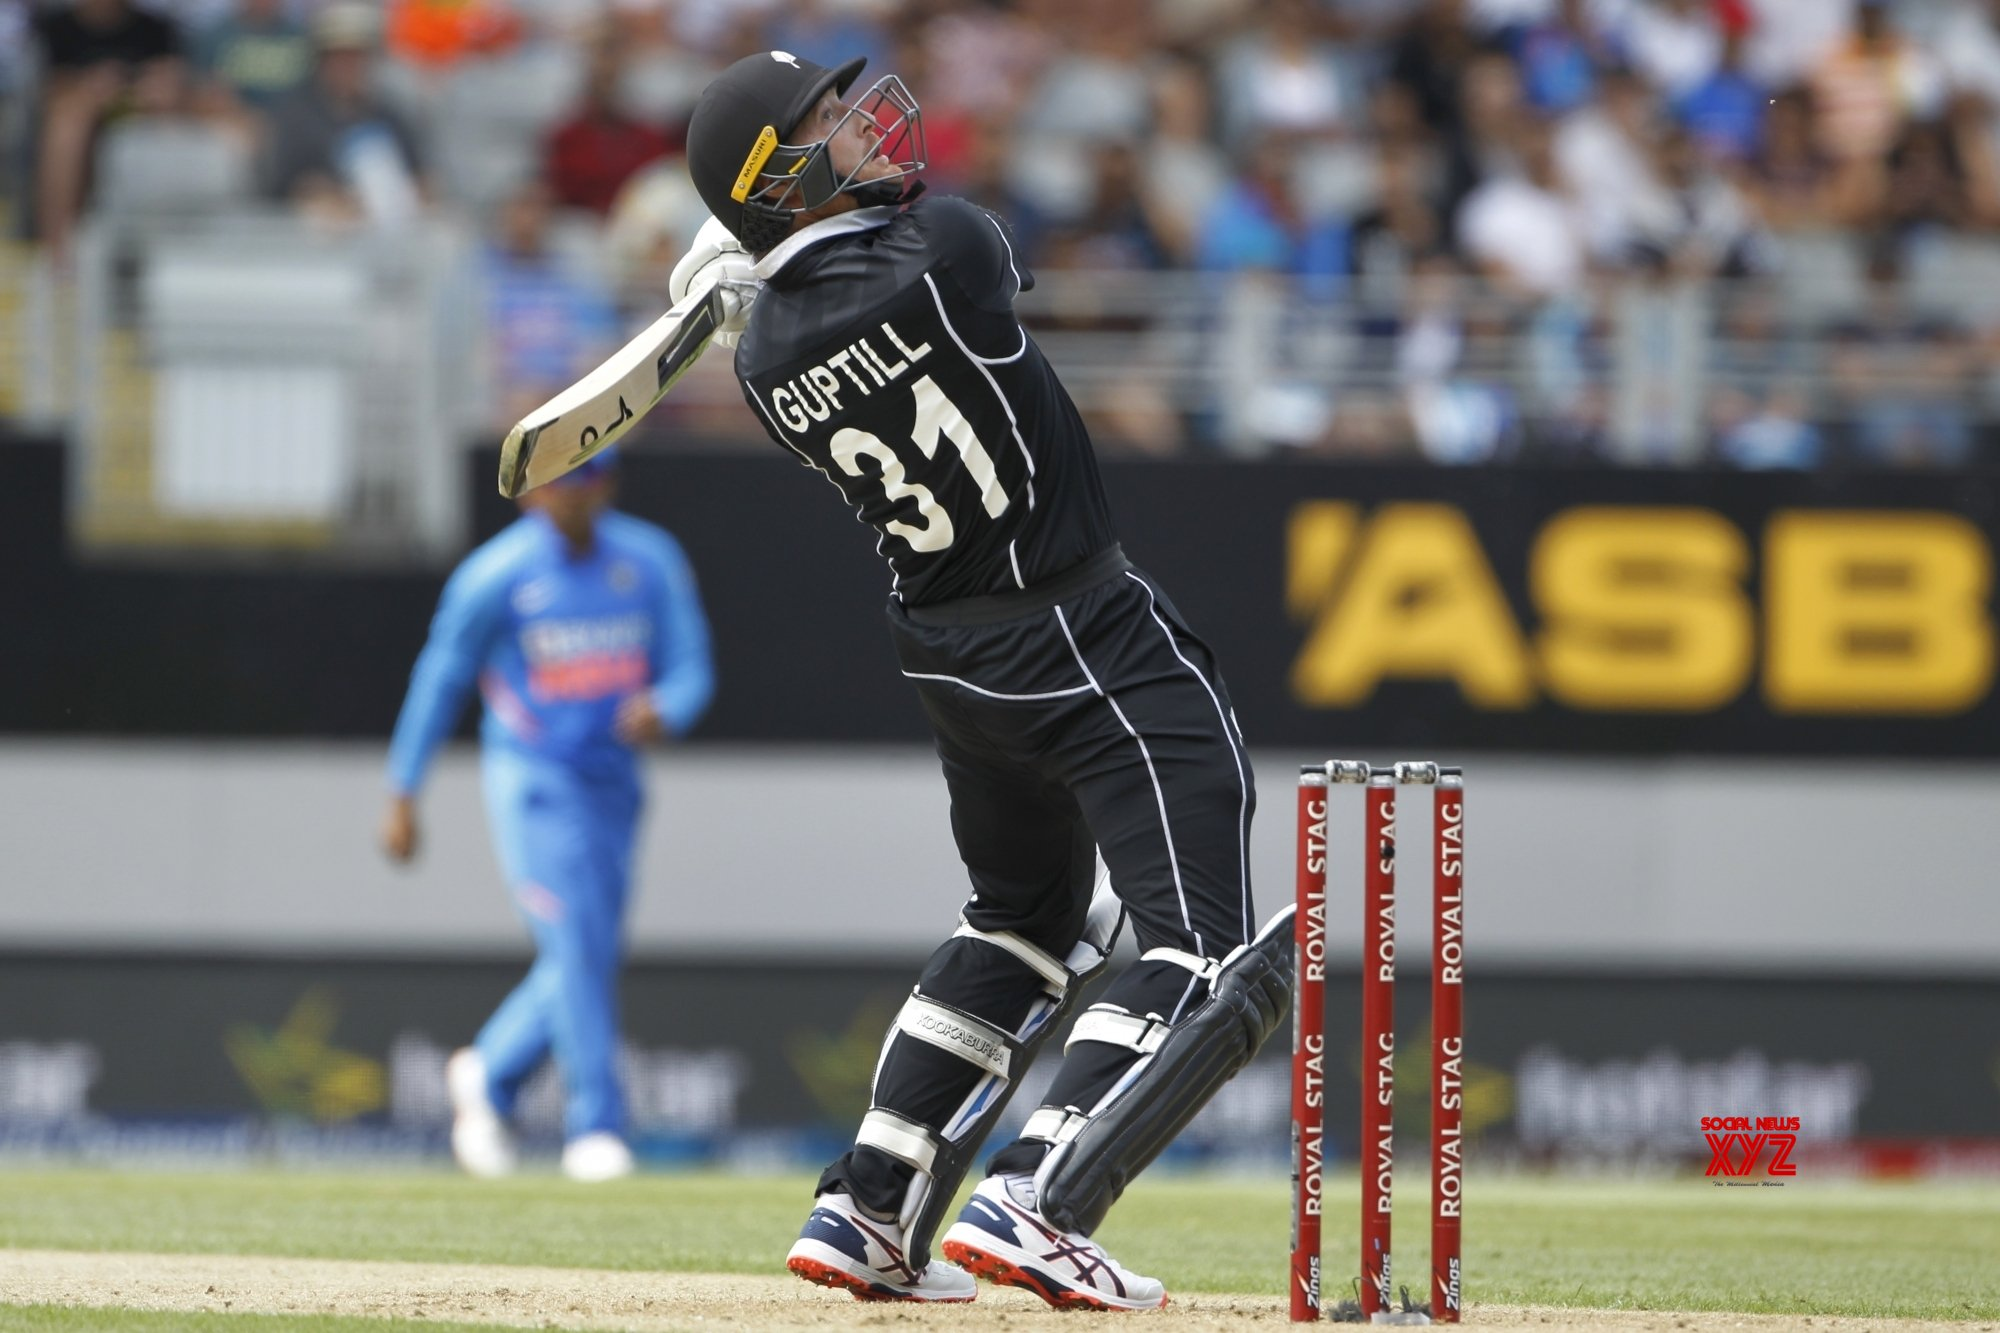 Auckland: 2nd ODI - India Vs New Zealand (Batch - 2) #Gallery